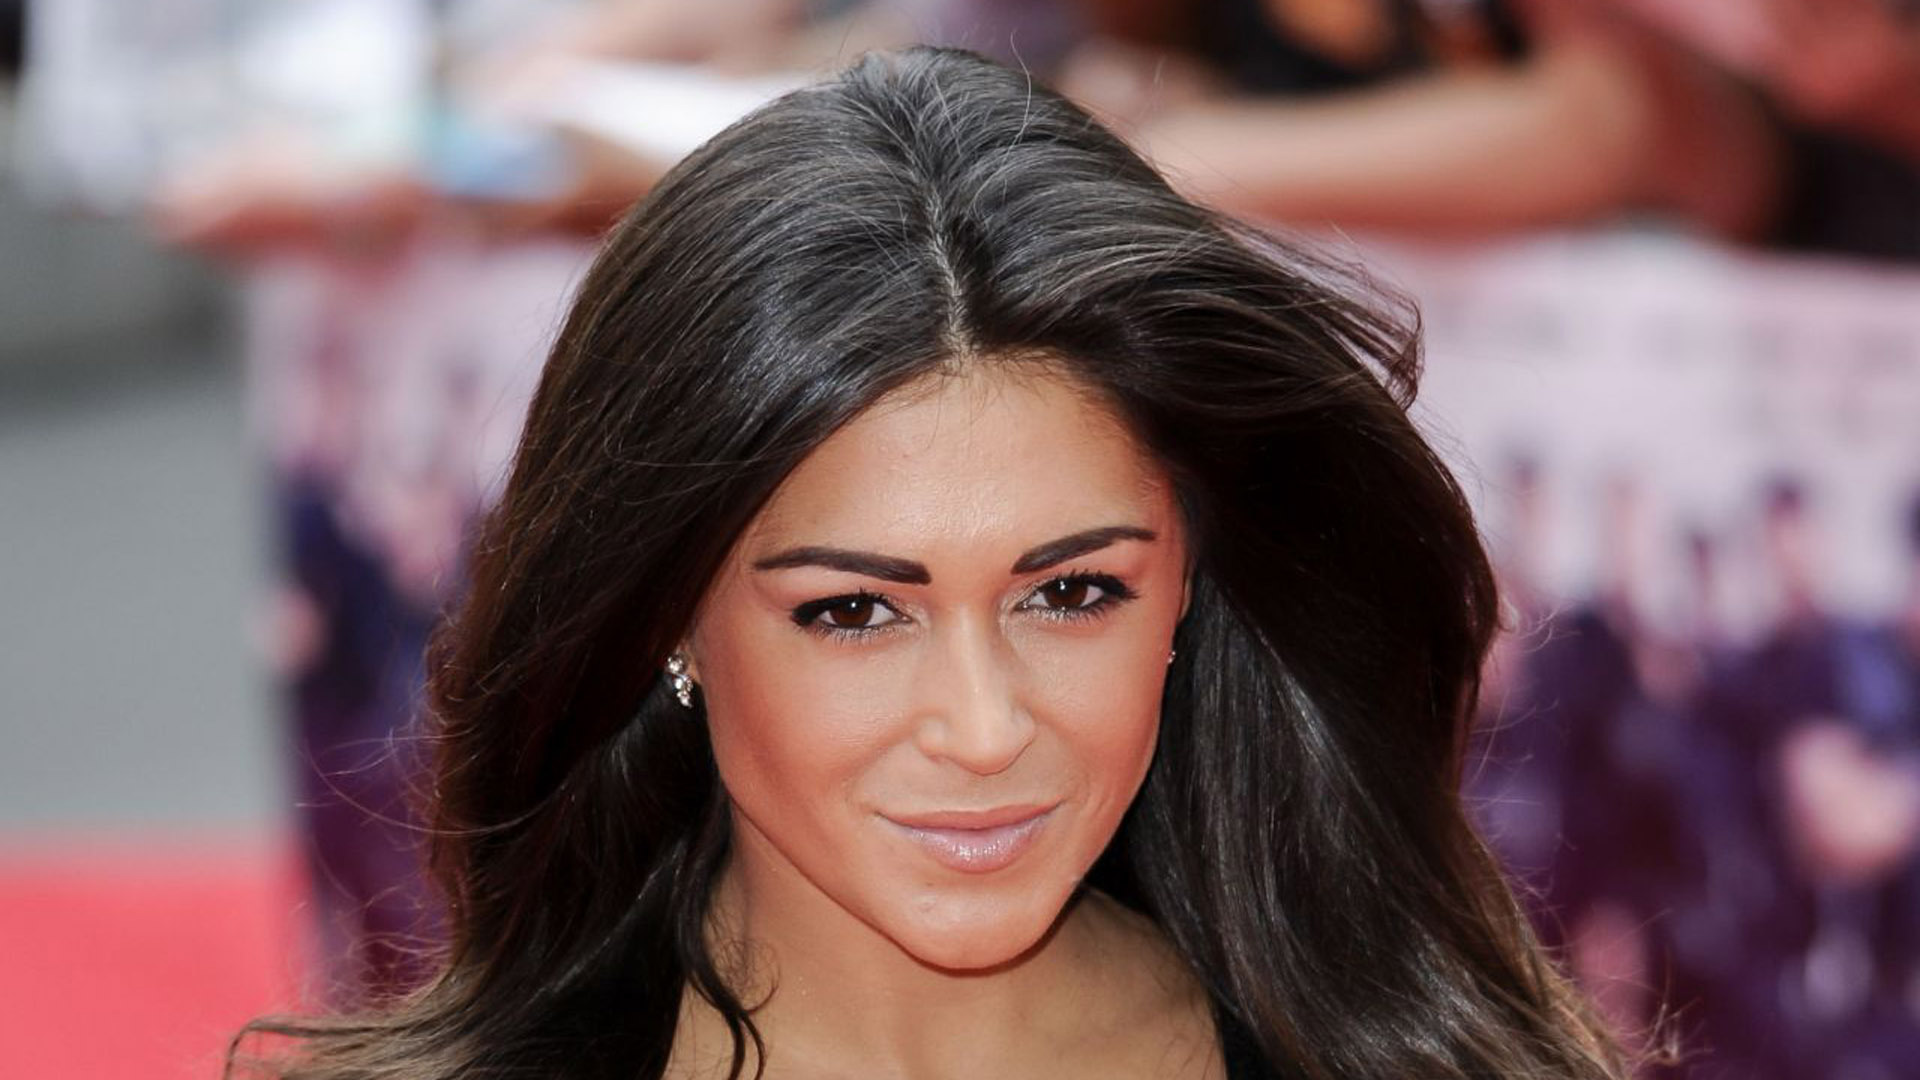 Casey Batchelor Wallpapers And Backgrounds